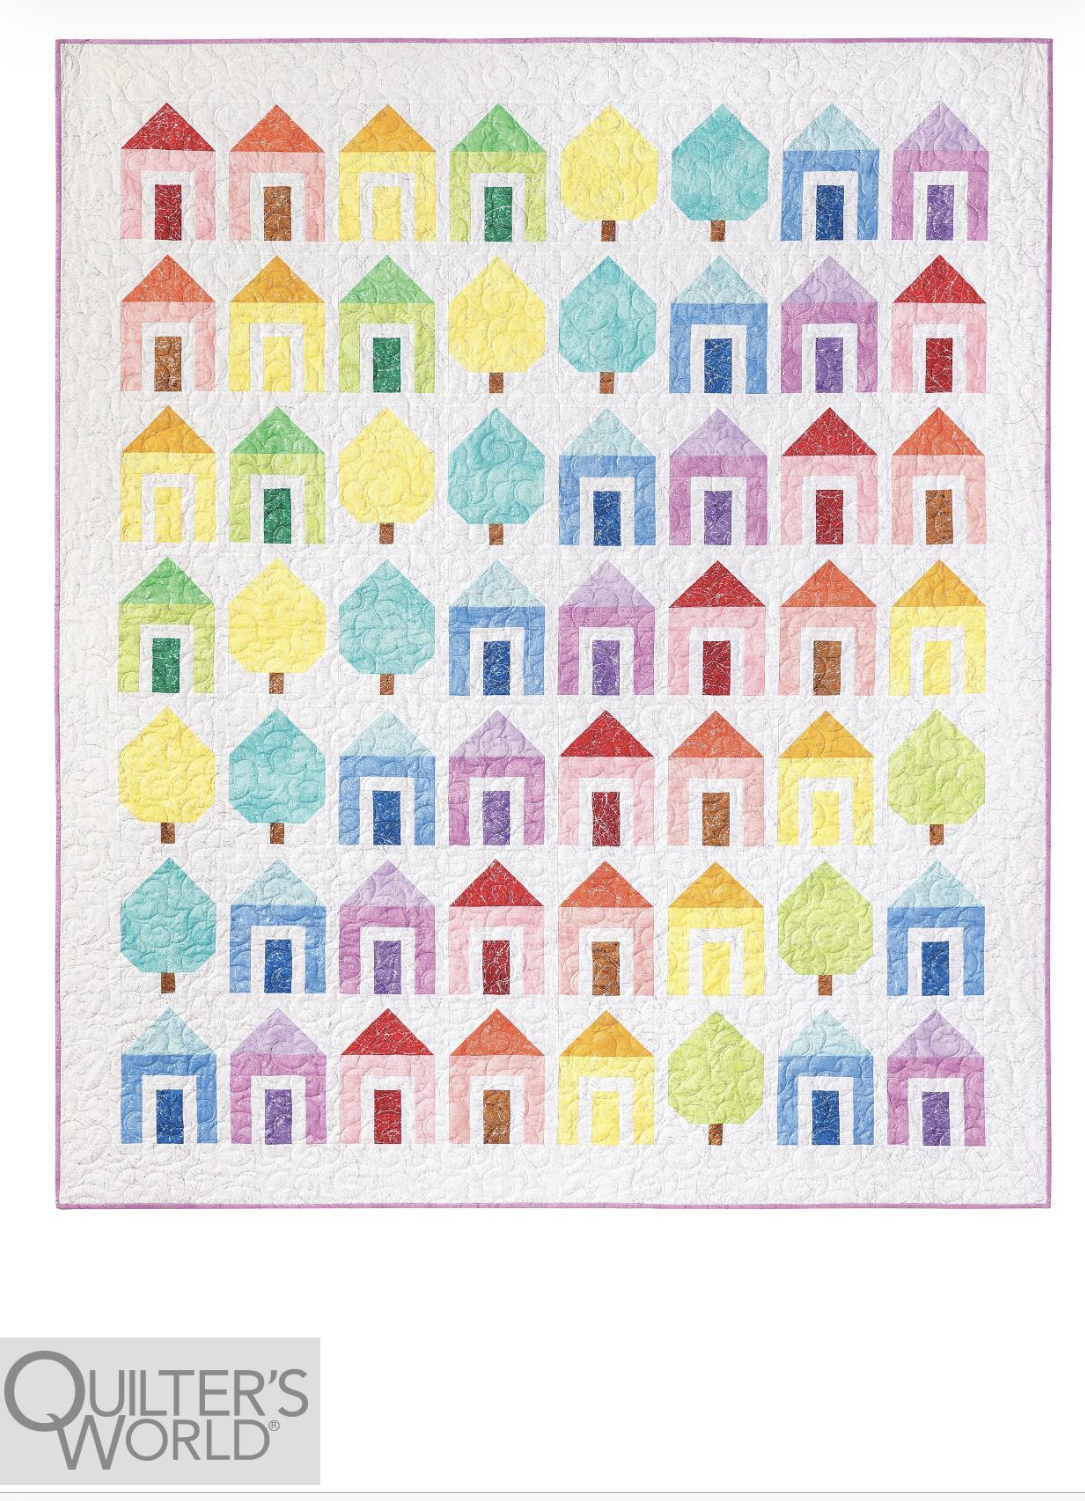 Candy Neighborhood Quilt Kit Designed by Wendy Sheppard featured in Quilter's World Magazine